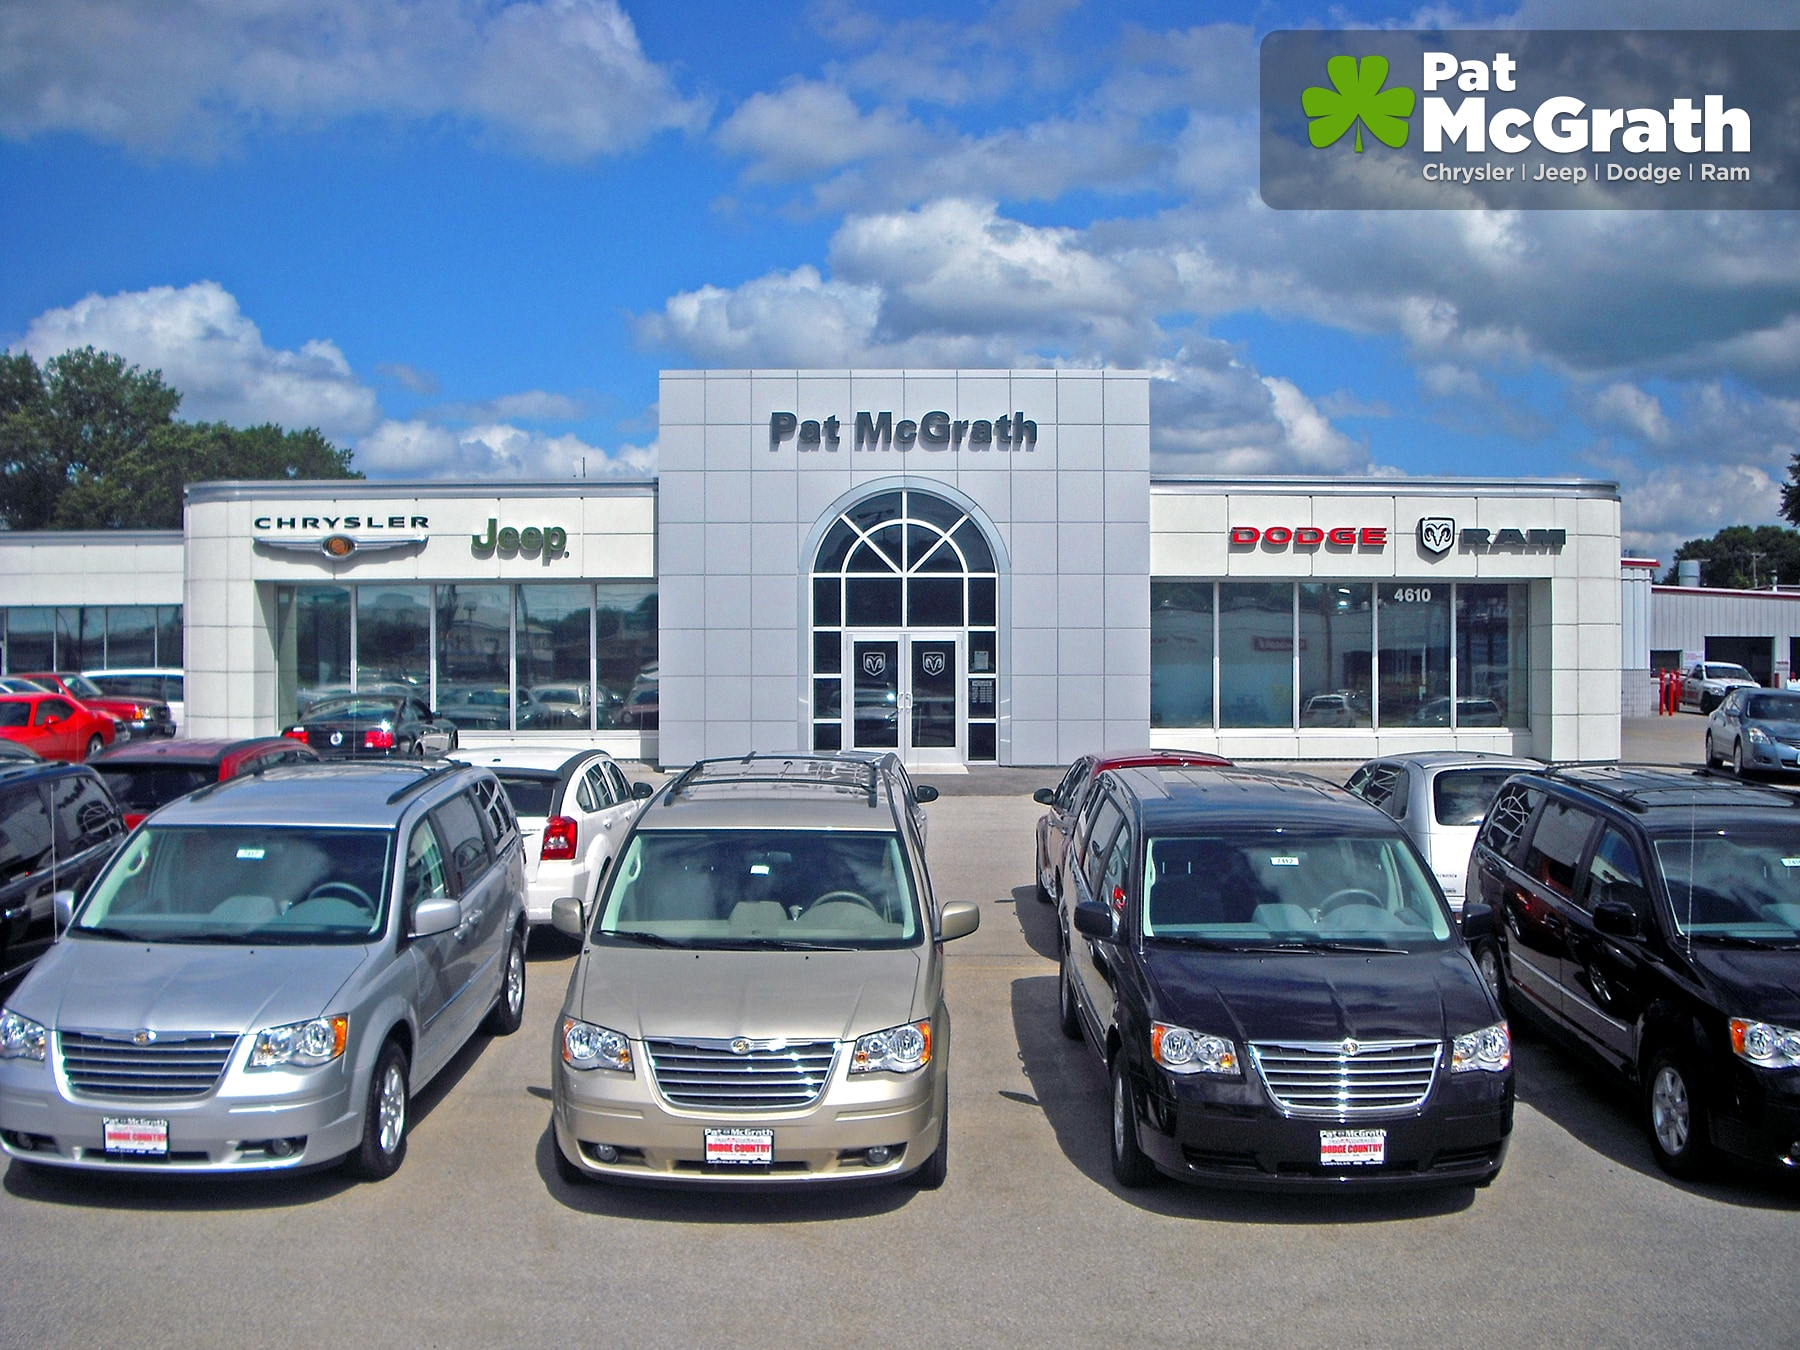 jeep cherokee vs jeep grand cherokee pat mcgrath chrysler jeep dodge ram. Cars Review. Best American Auto & Cars Review